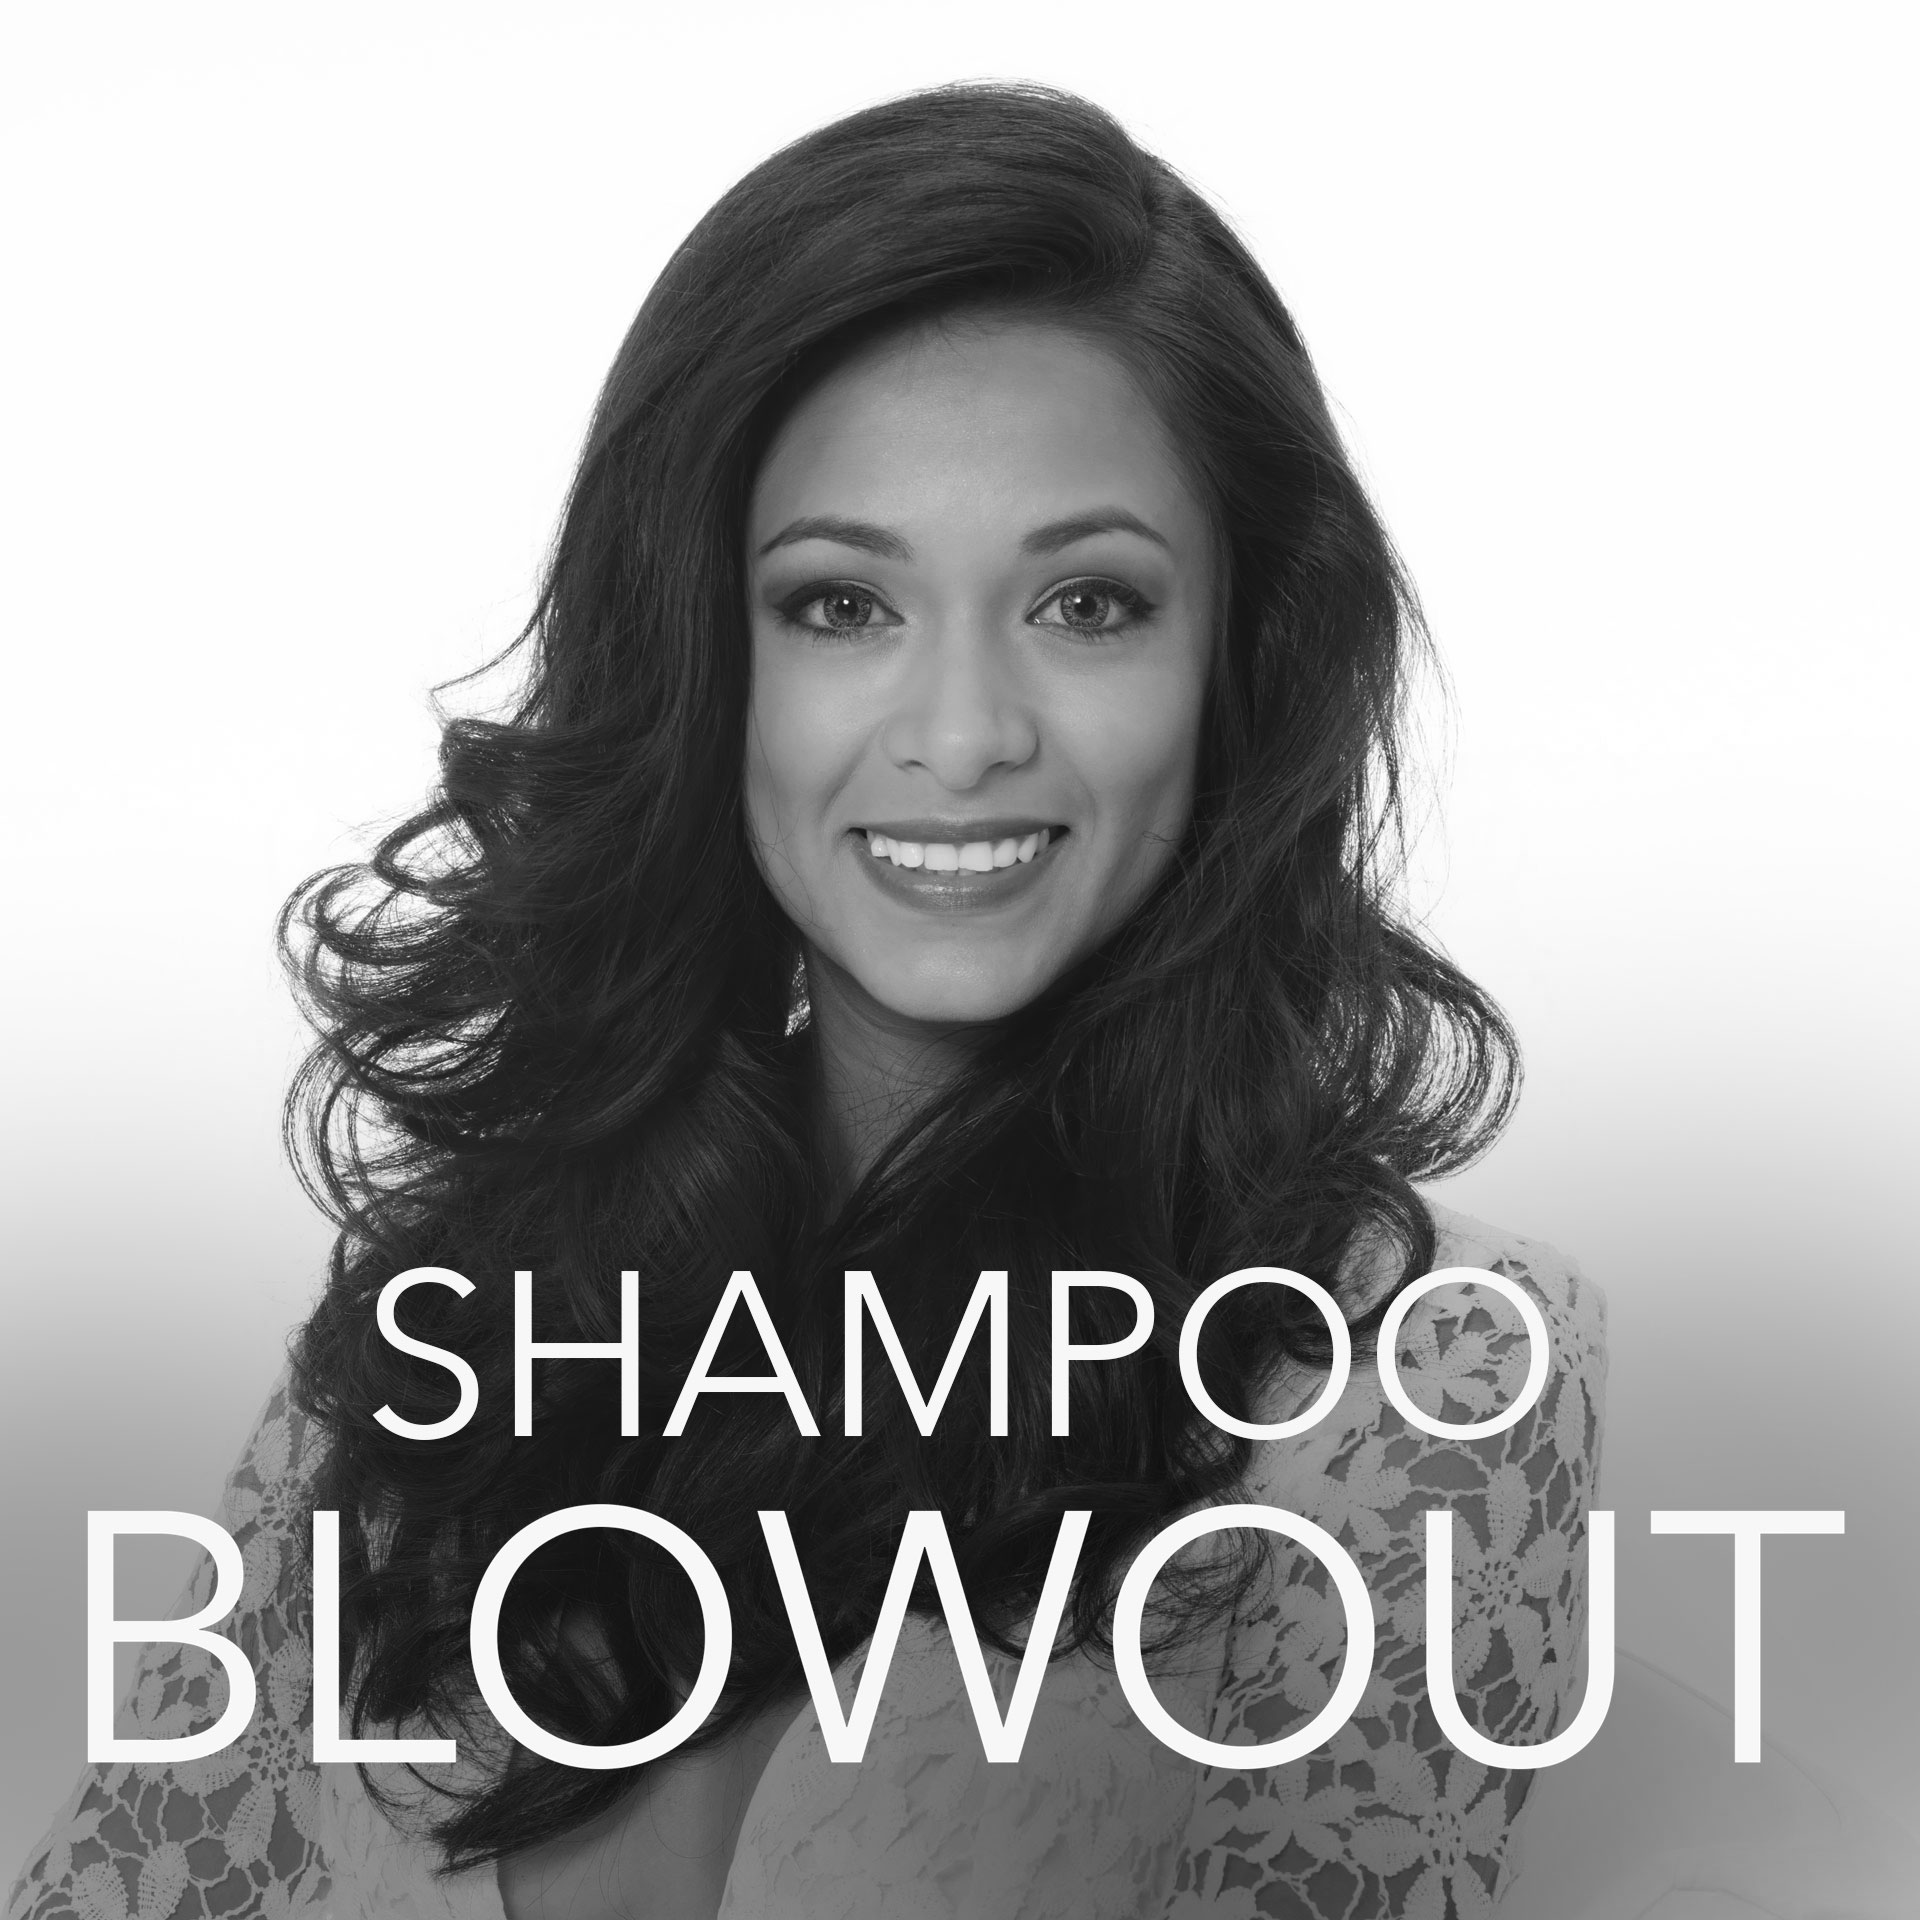 Shampoo blowout aalam the salon for Aalam salon prices